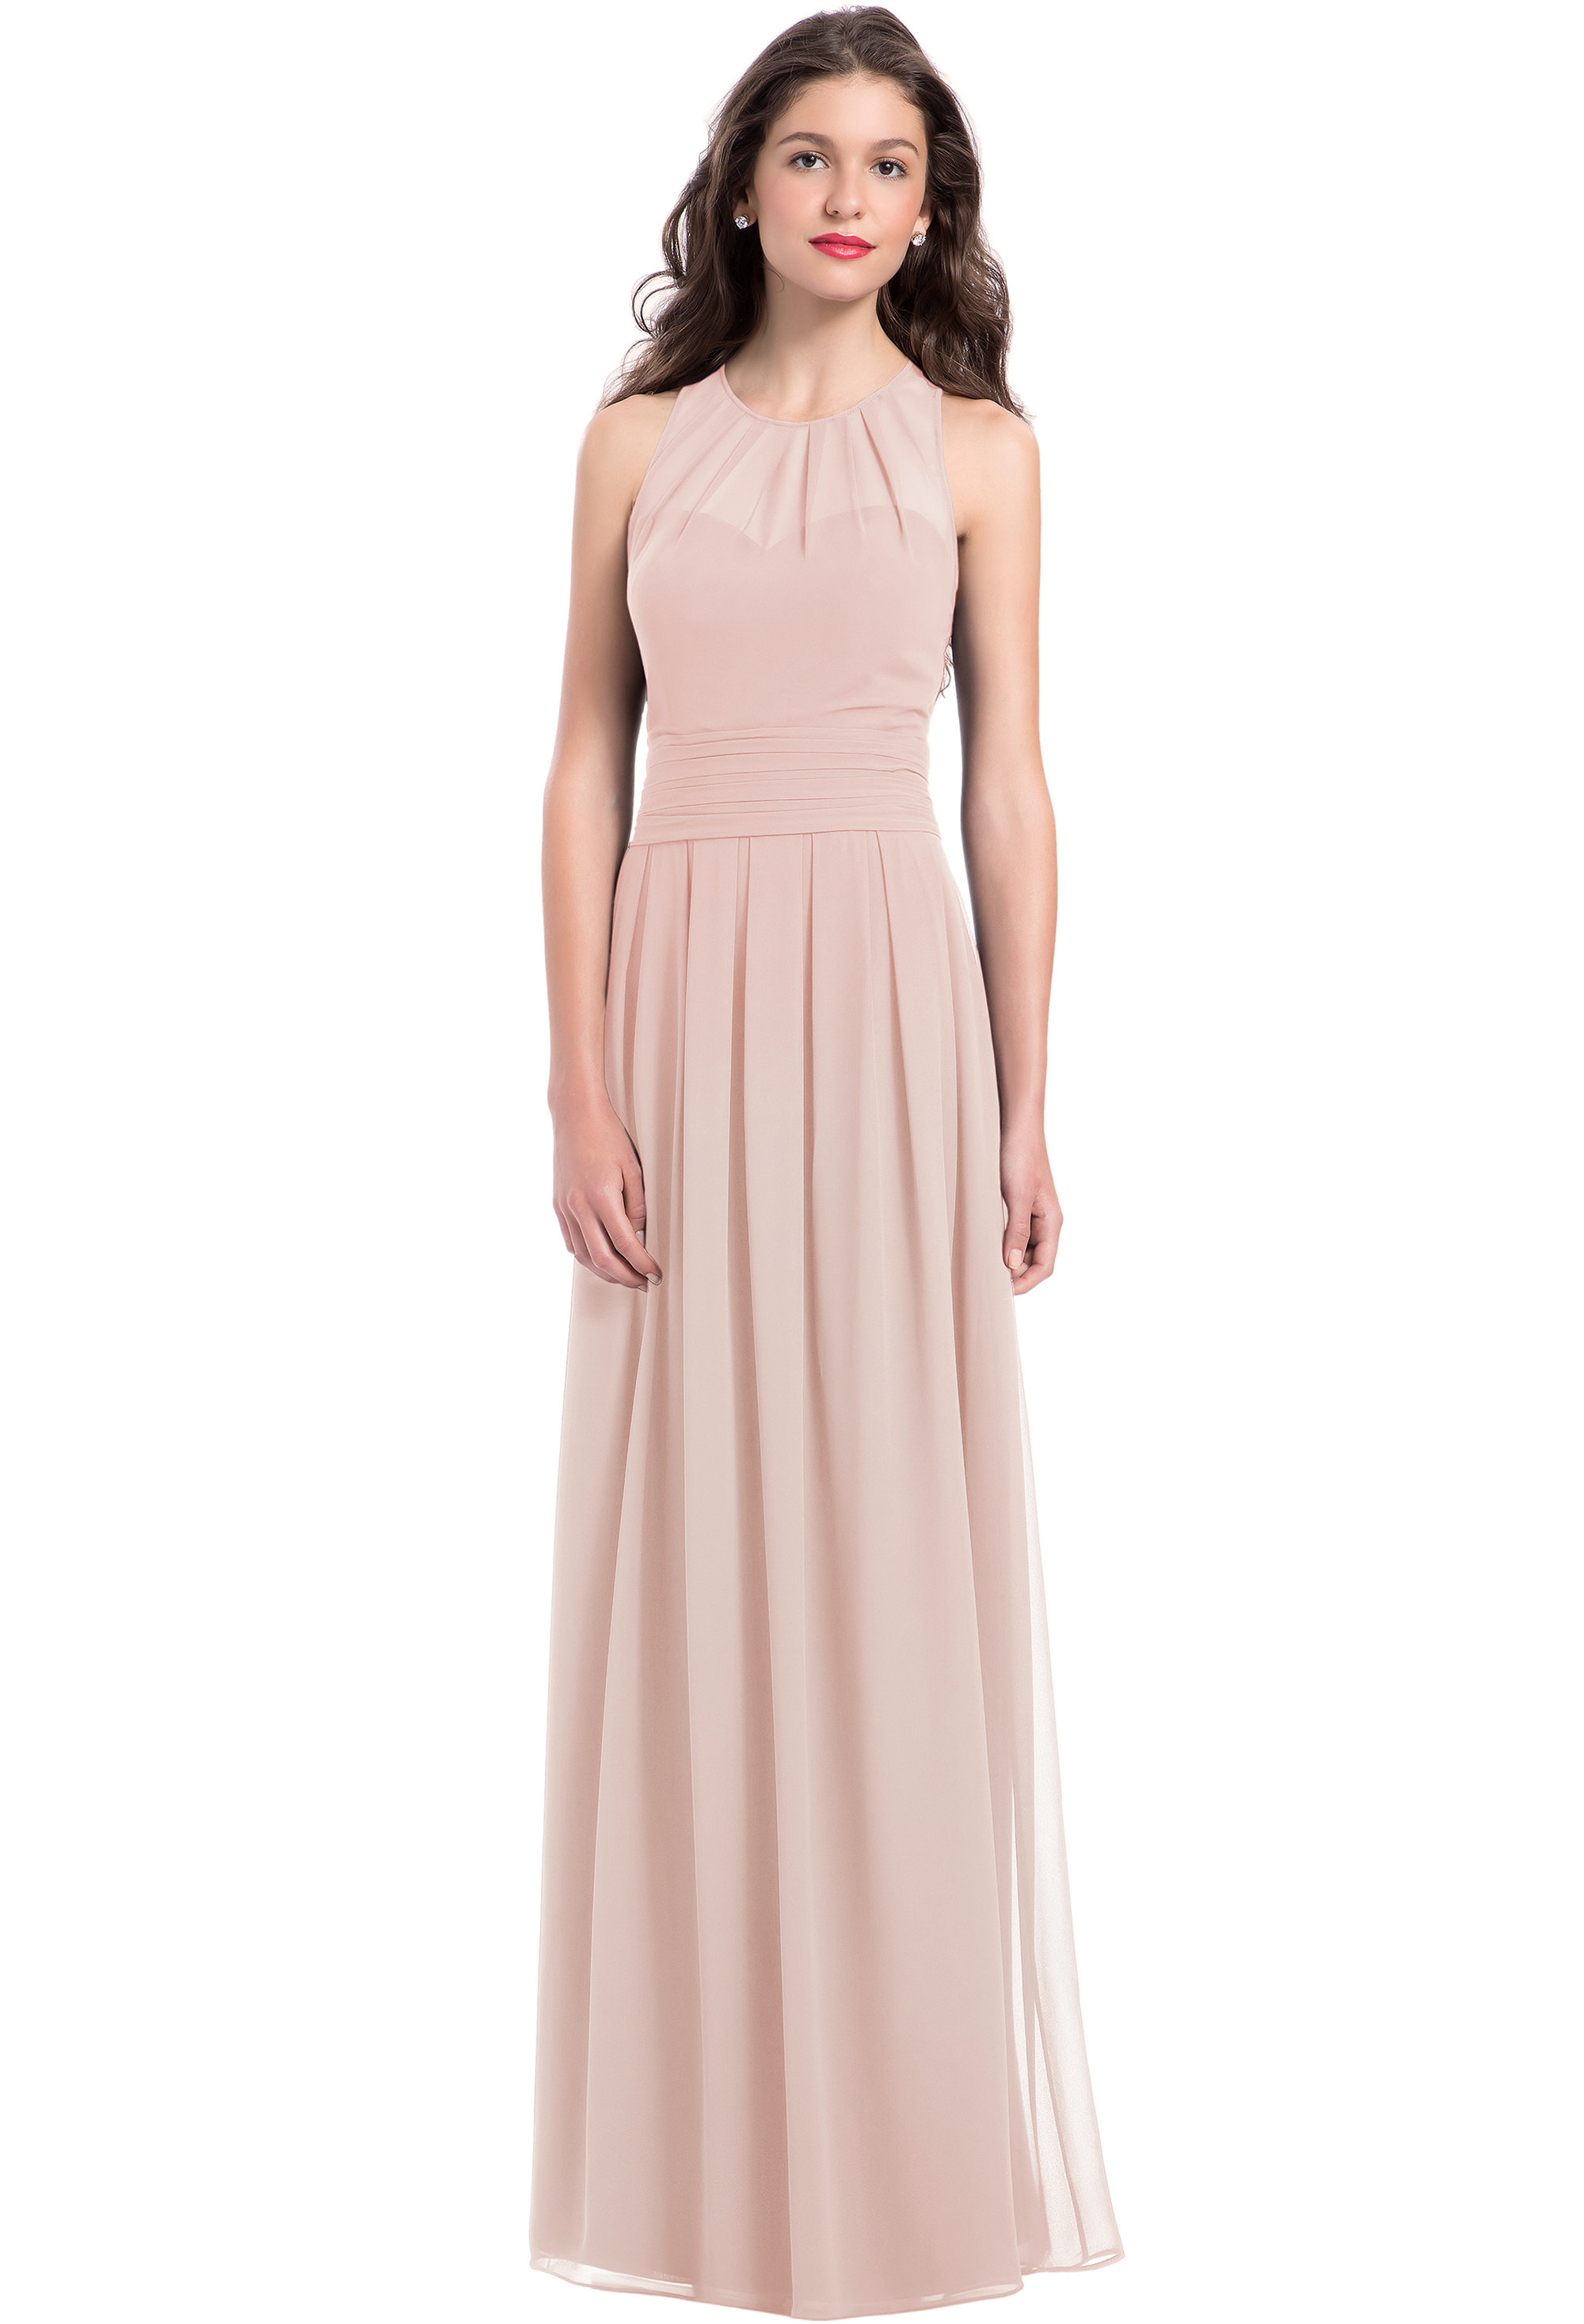 Bill Levkoff FROST ROSE Chiffon Jewel A-line gown, $220.00 Front